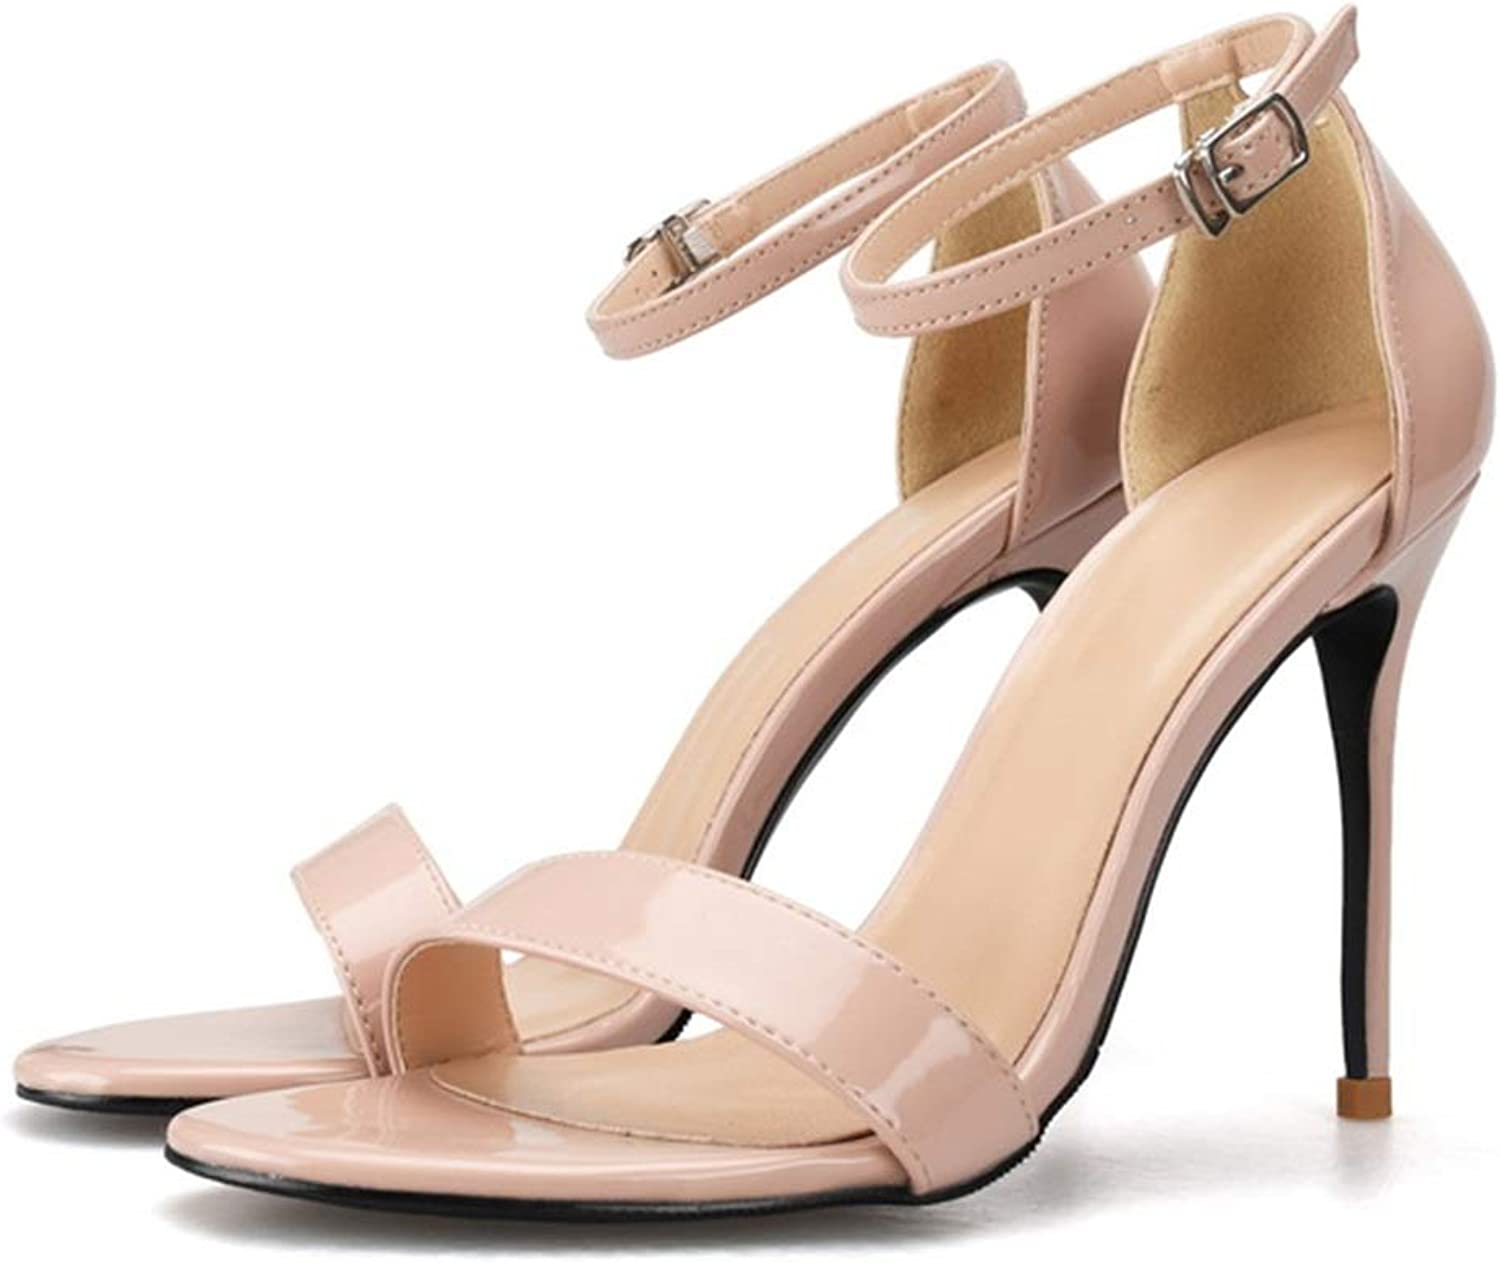 Lindarry Ankle Strap Sandals for Women Stiletto High Heeled Pumps for Ladies Patent PU Leather Open Toe Sides Cut Fashion (color   Nude, Size   3.5 M US)